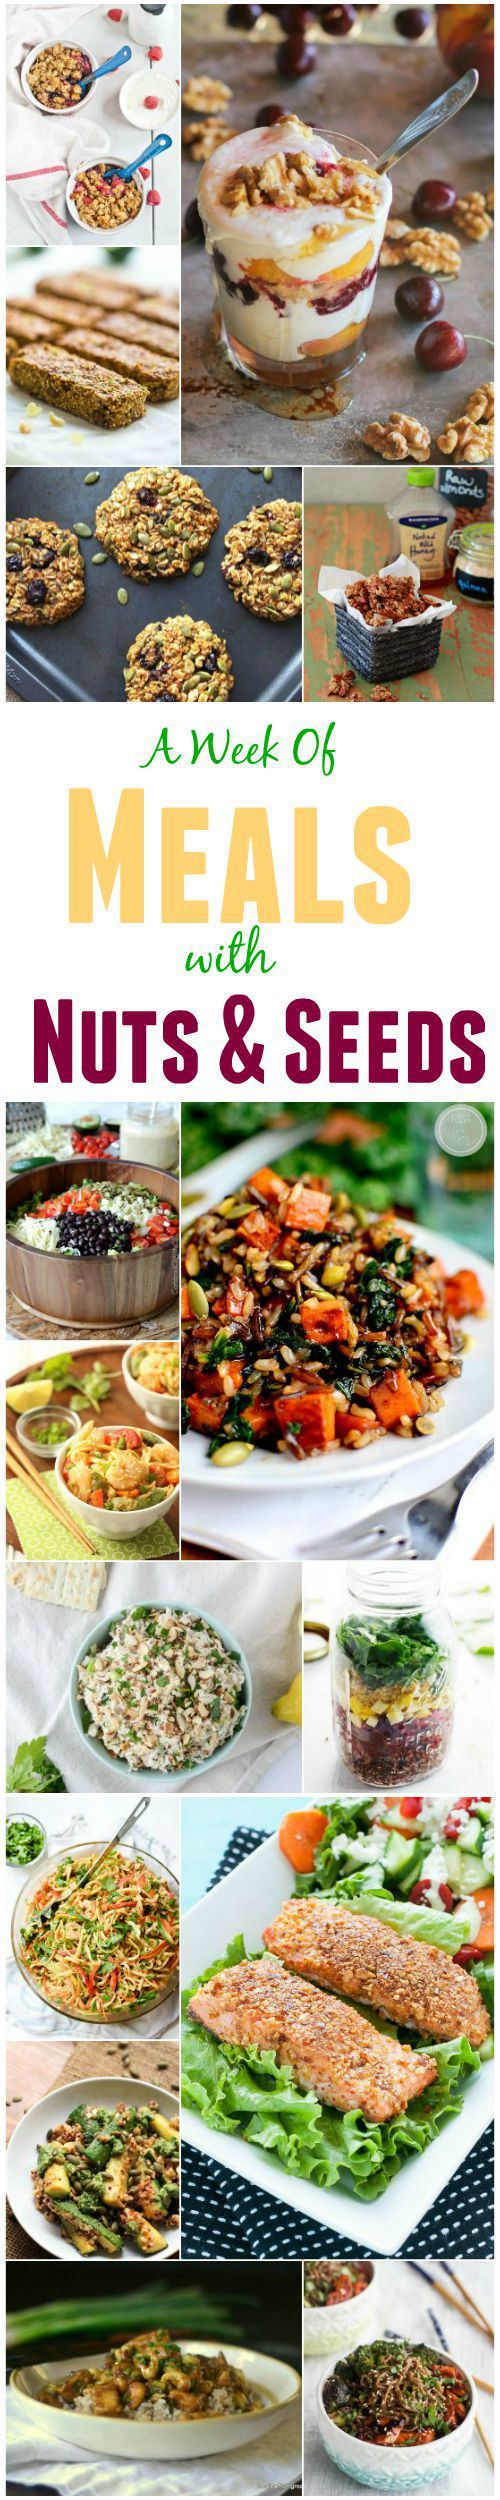 A Weekly Meal Plan with recipes that include nuts and seeds. Ideas for breakfast, lunch and dinner!